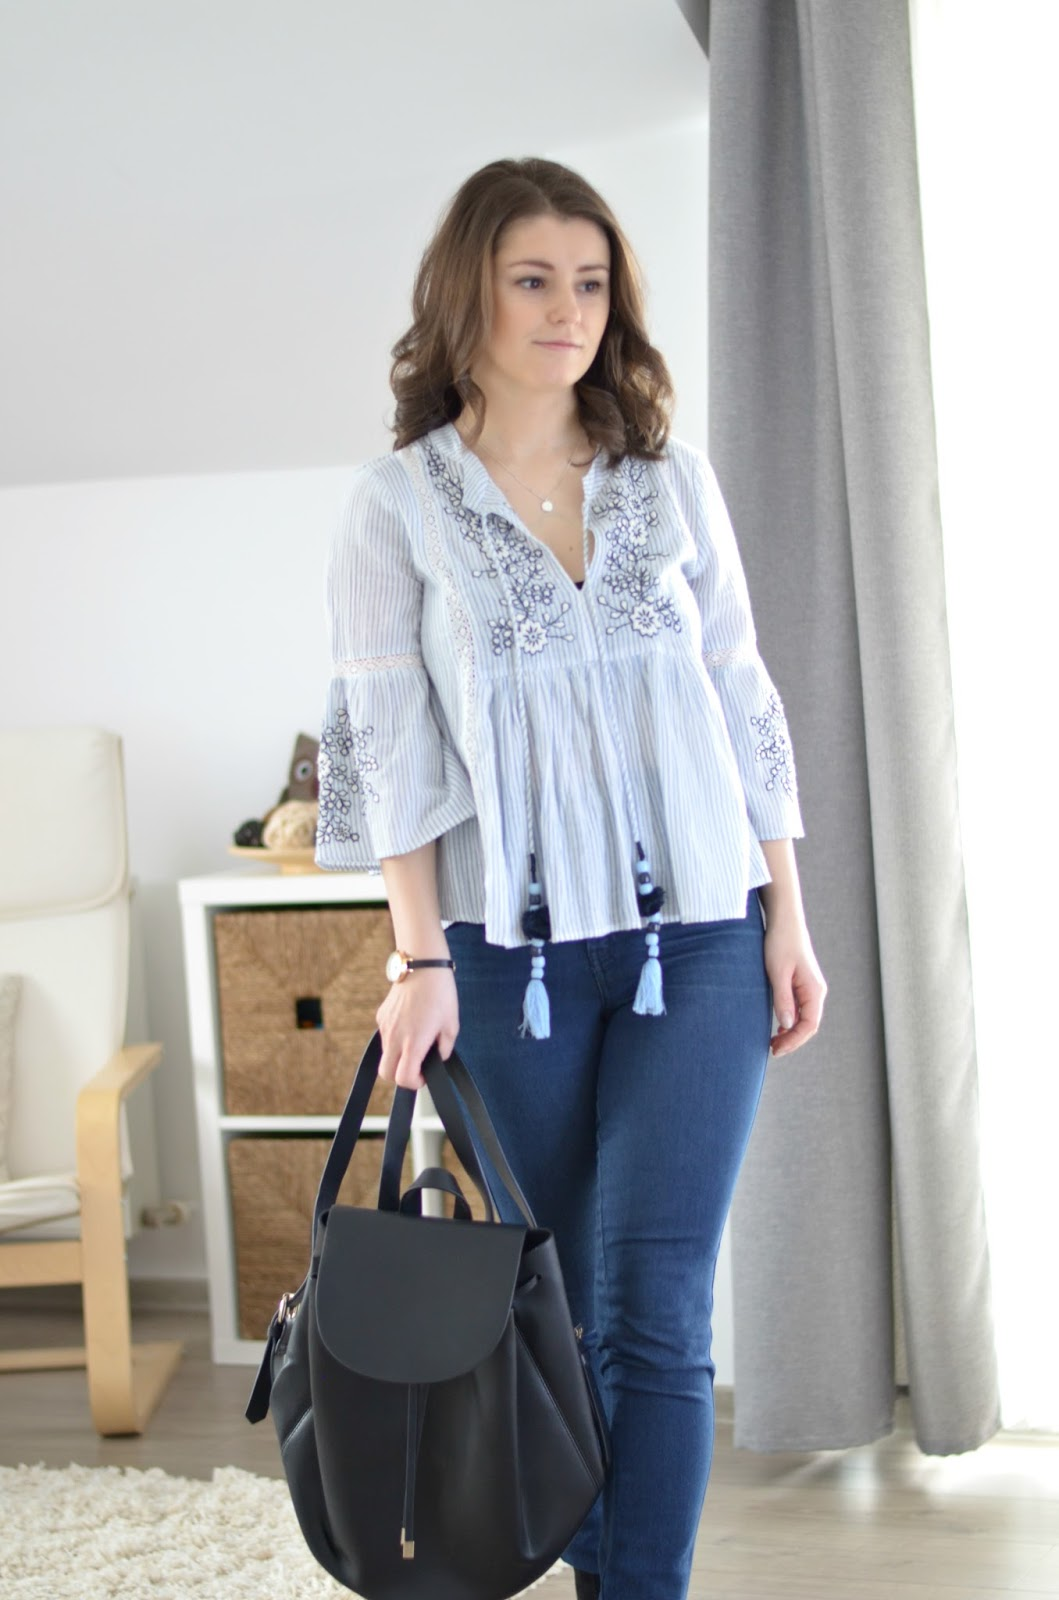 blue embroidered blouse outfit from Zara